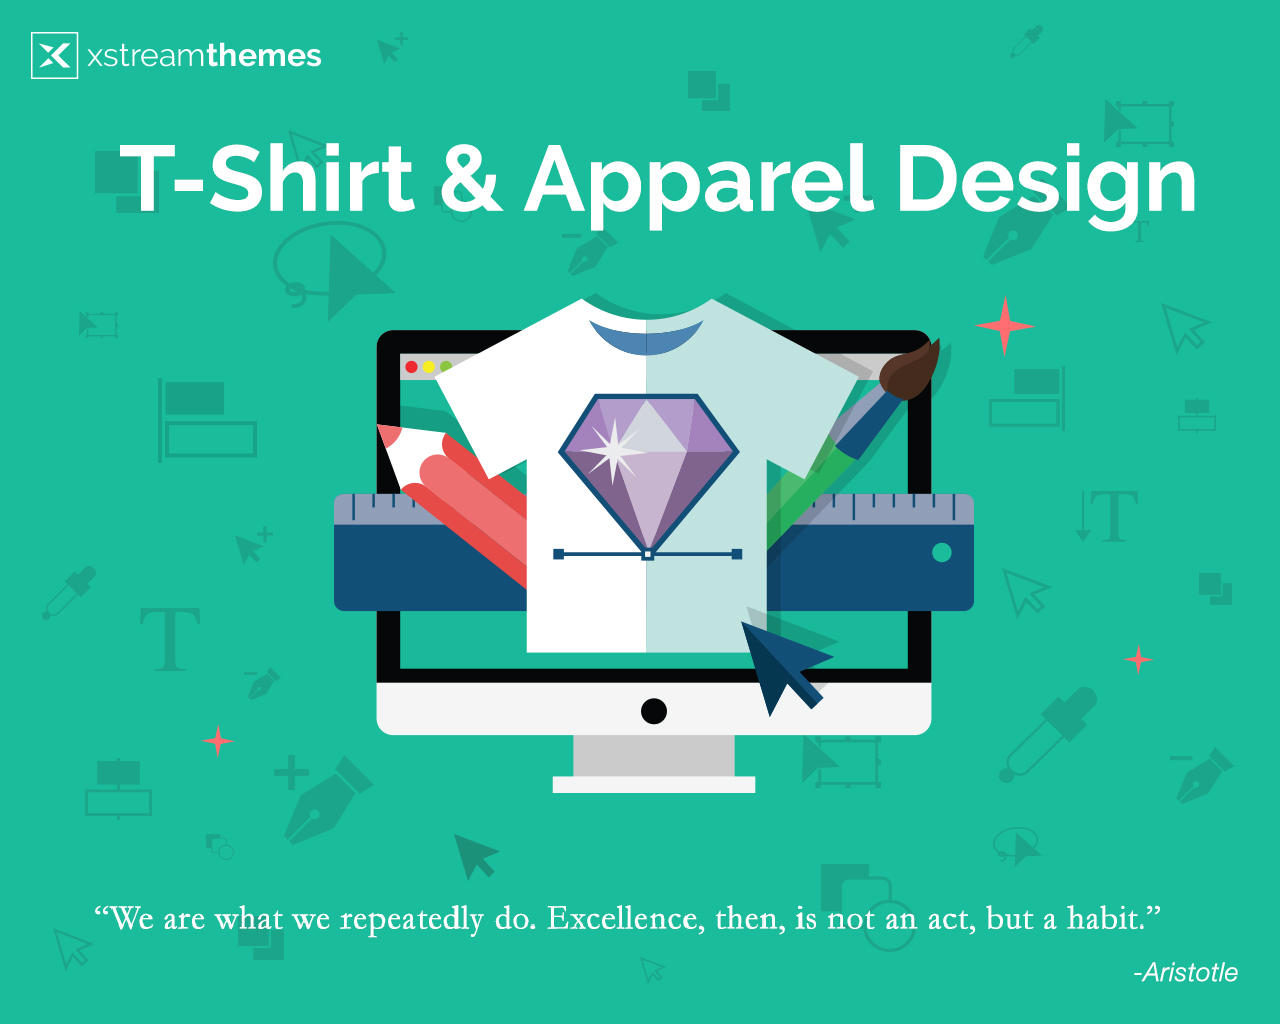 Professional T-Shirt & Apparel Design by xstreamthemes - 102046